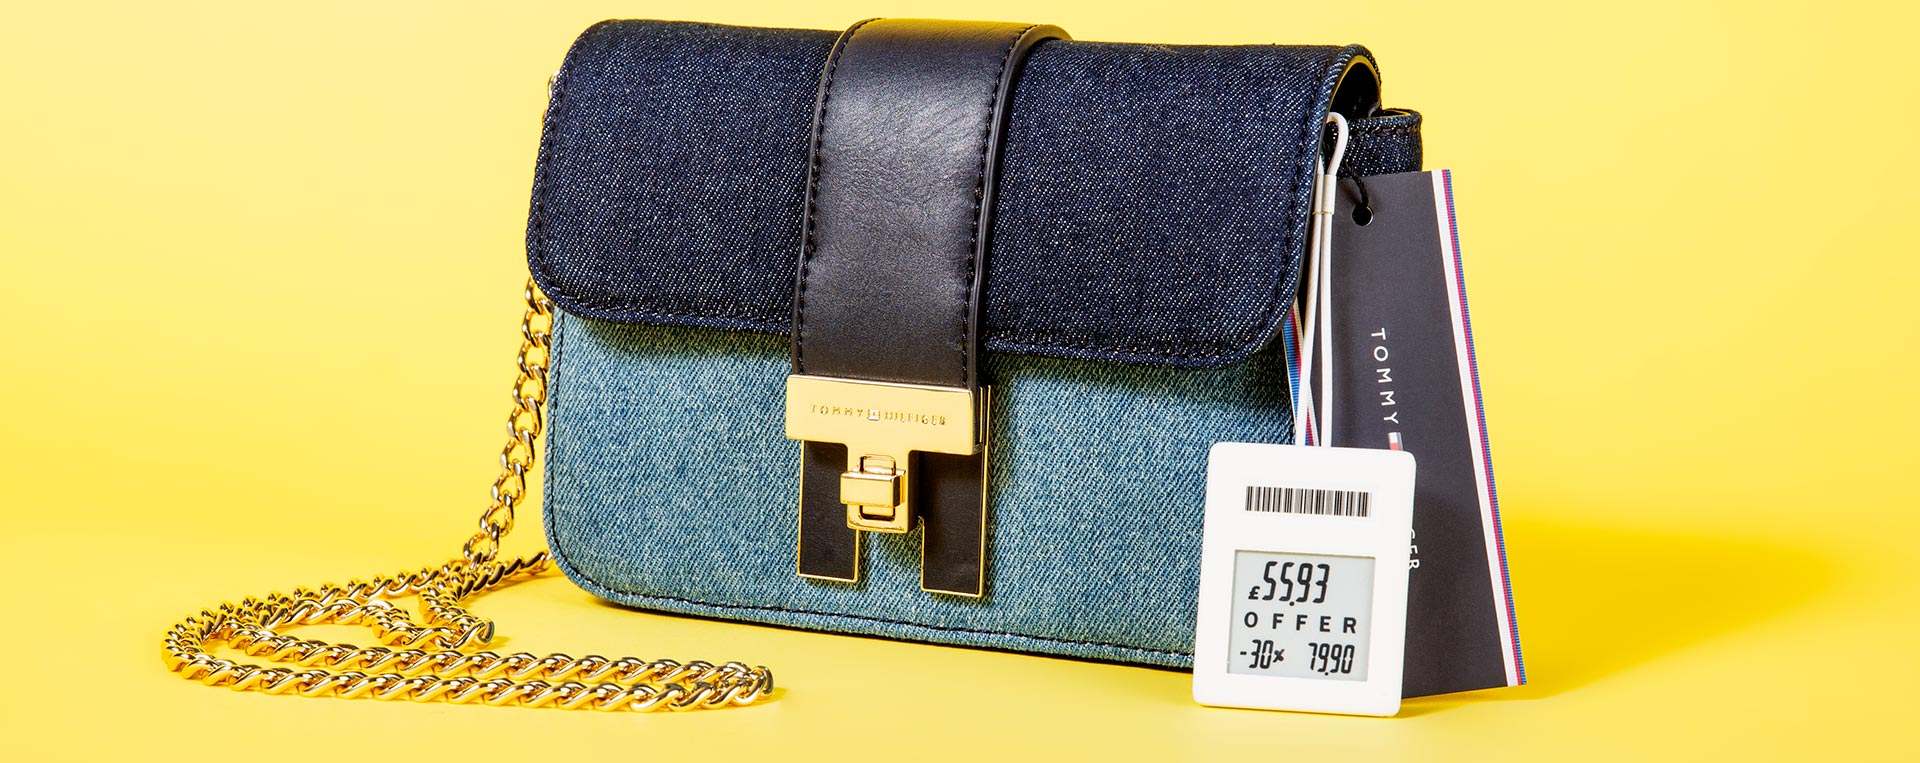 electronic fashion pricetag